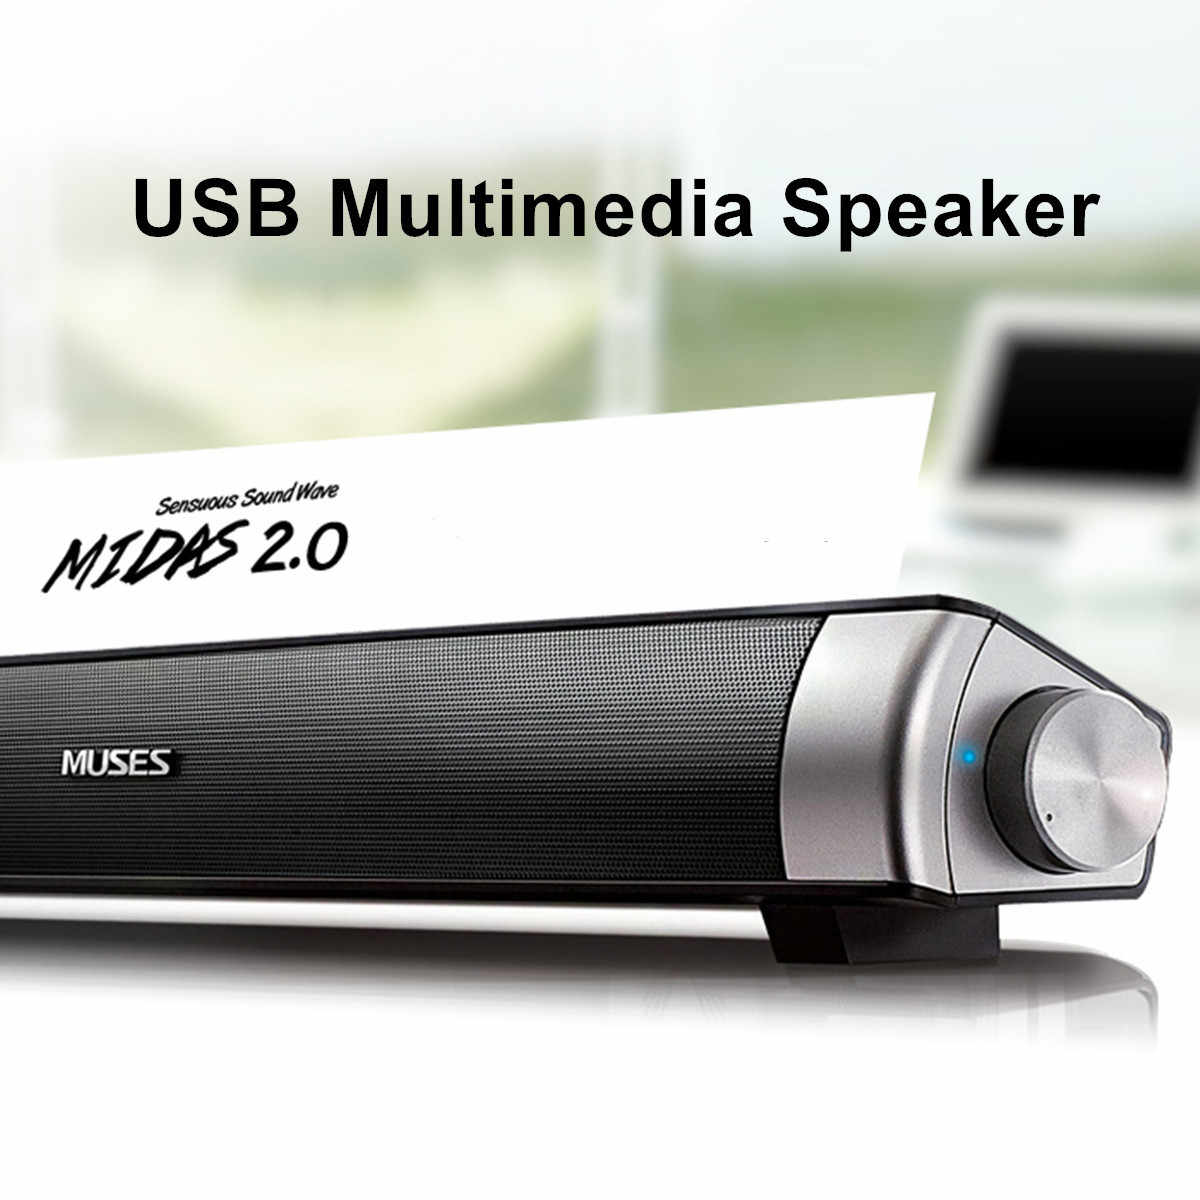 Speaker Kabel Soundbar Speaker HI FI Bass Stereo Suara Bar dengan USB AUX MIC untuk Komputer PC Smartphone TV Home Theater laptop